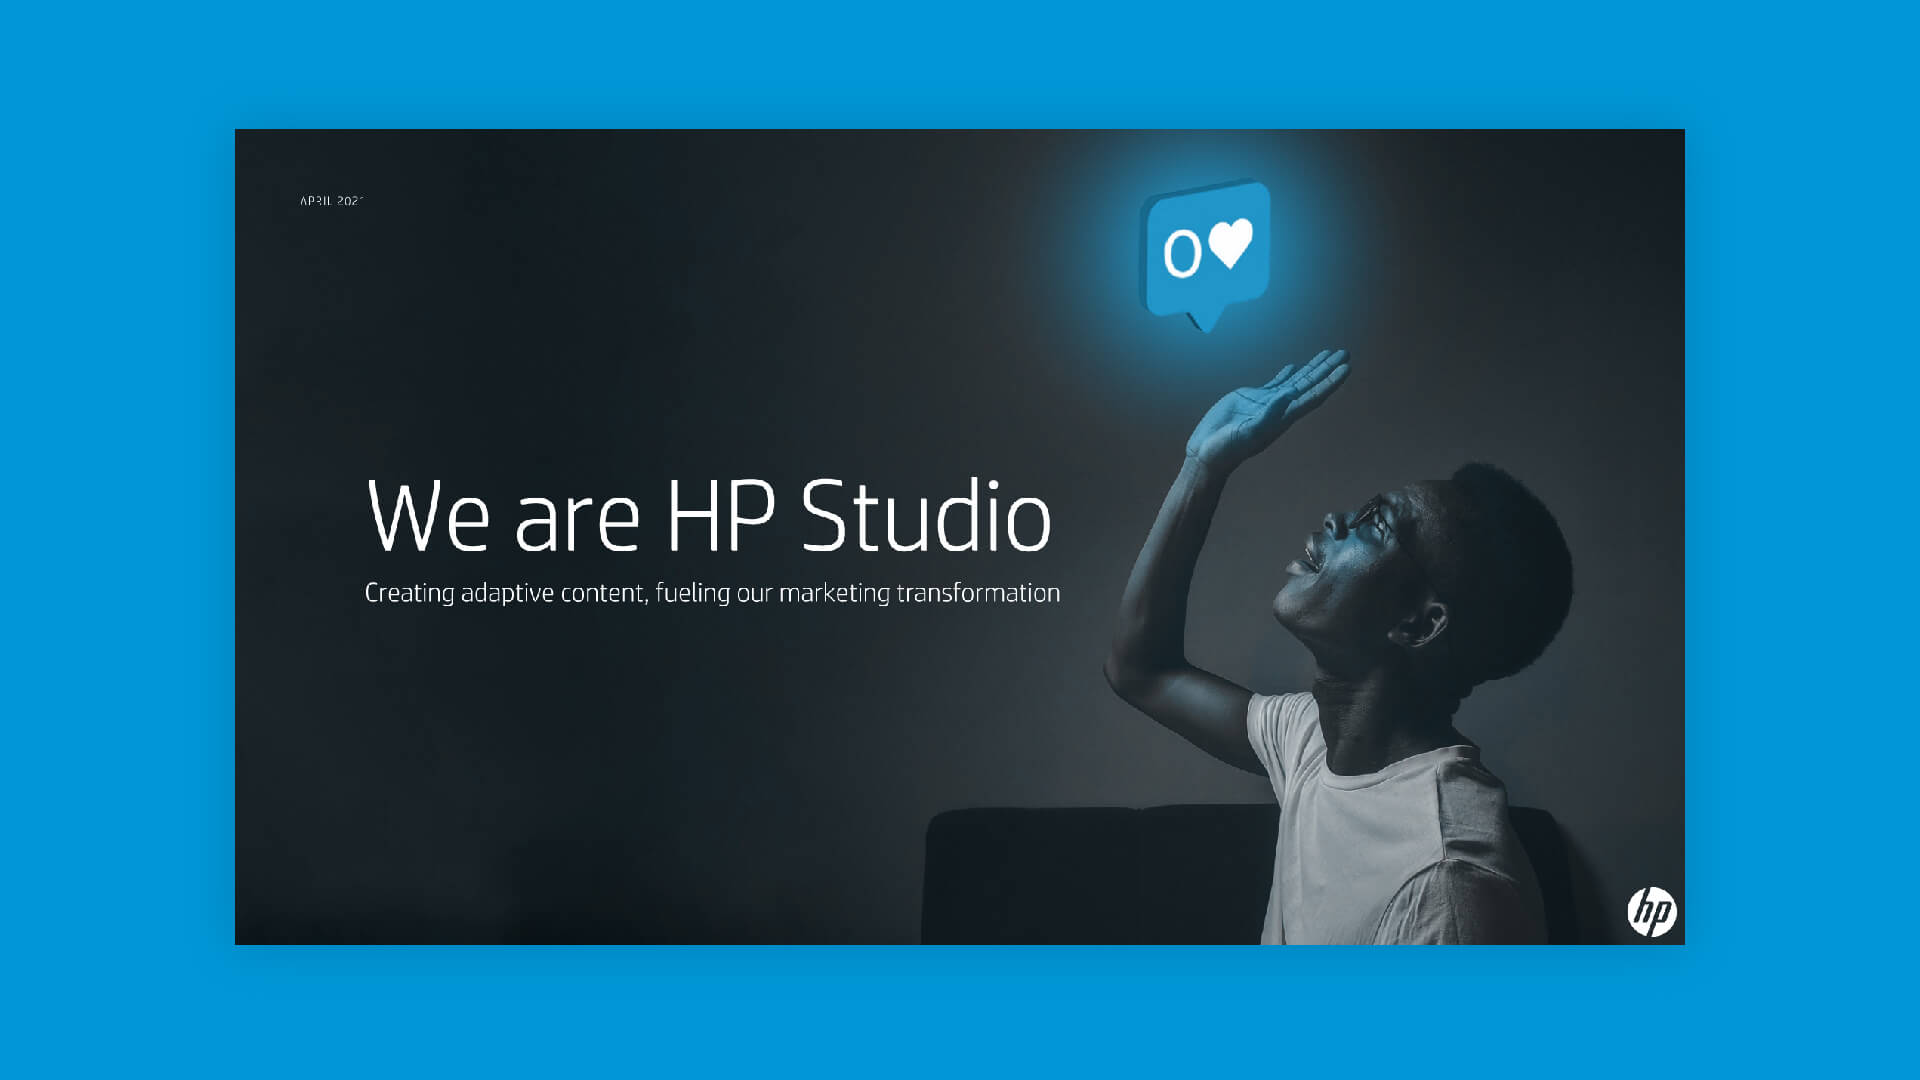 Pitch deck design for HP's 100-strong, in-house design studio